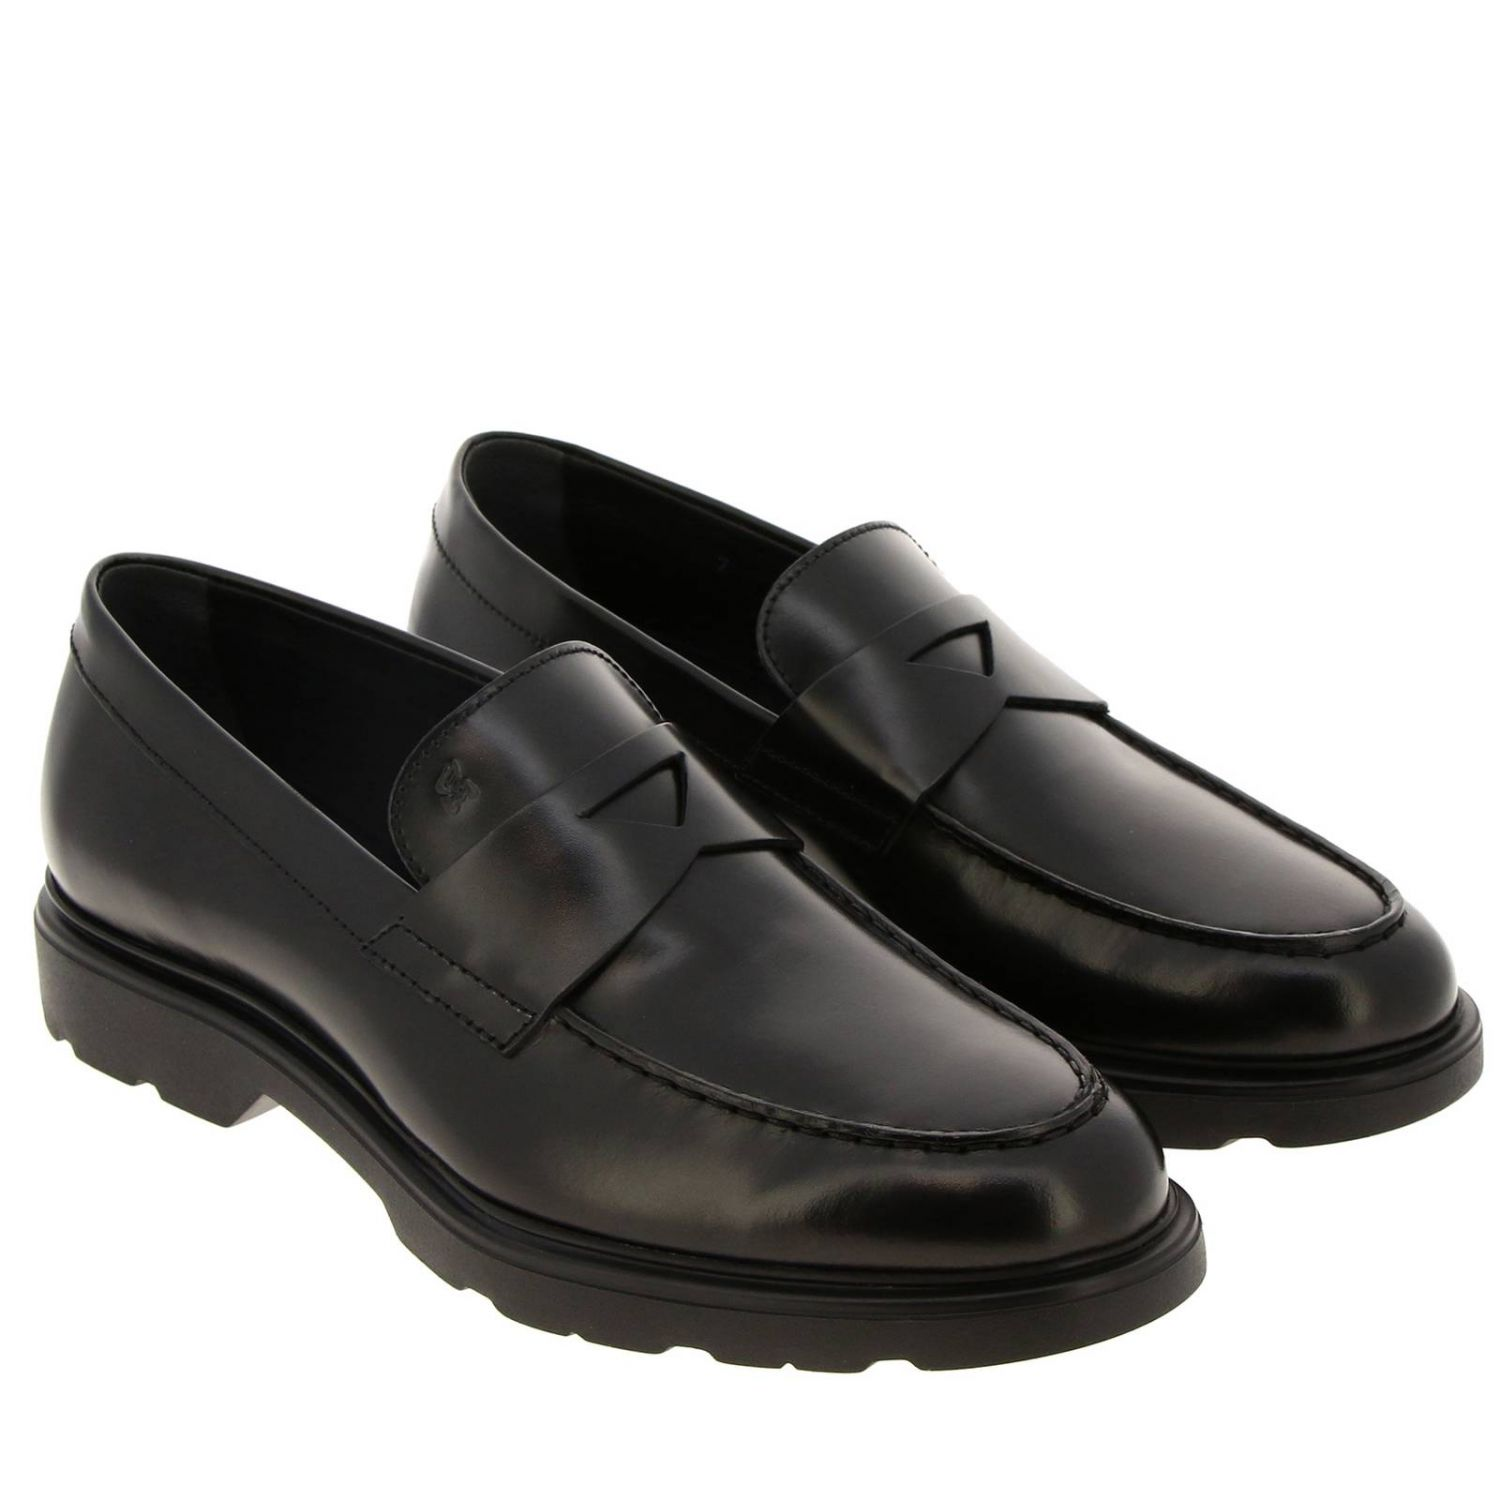 Route 393 loafers (H304 memory sole) Hogan in brushed leather